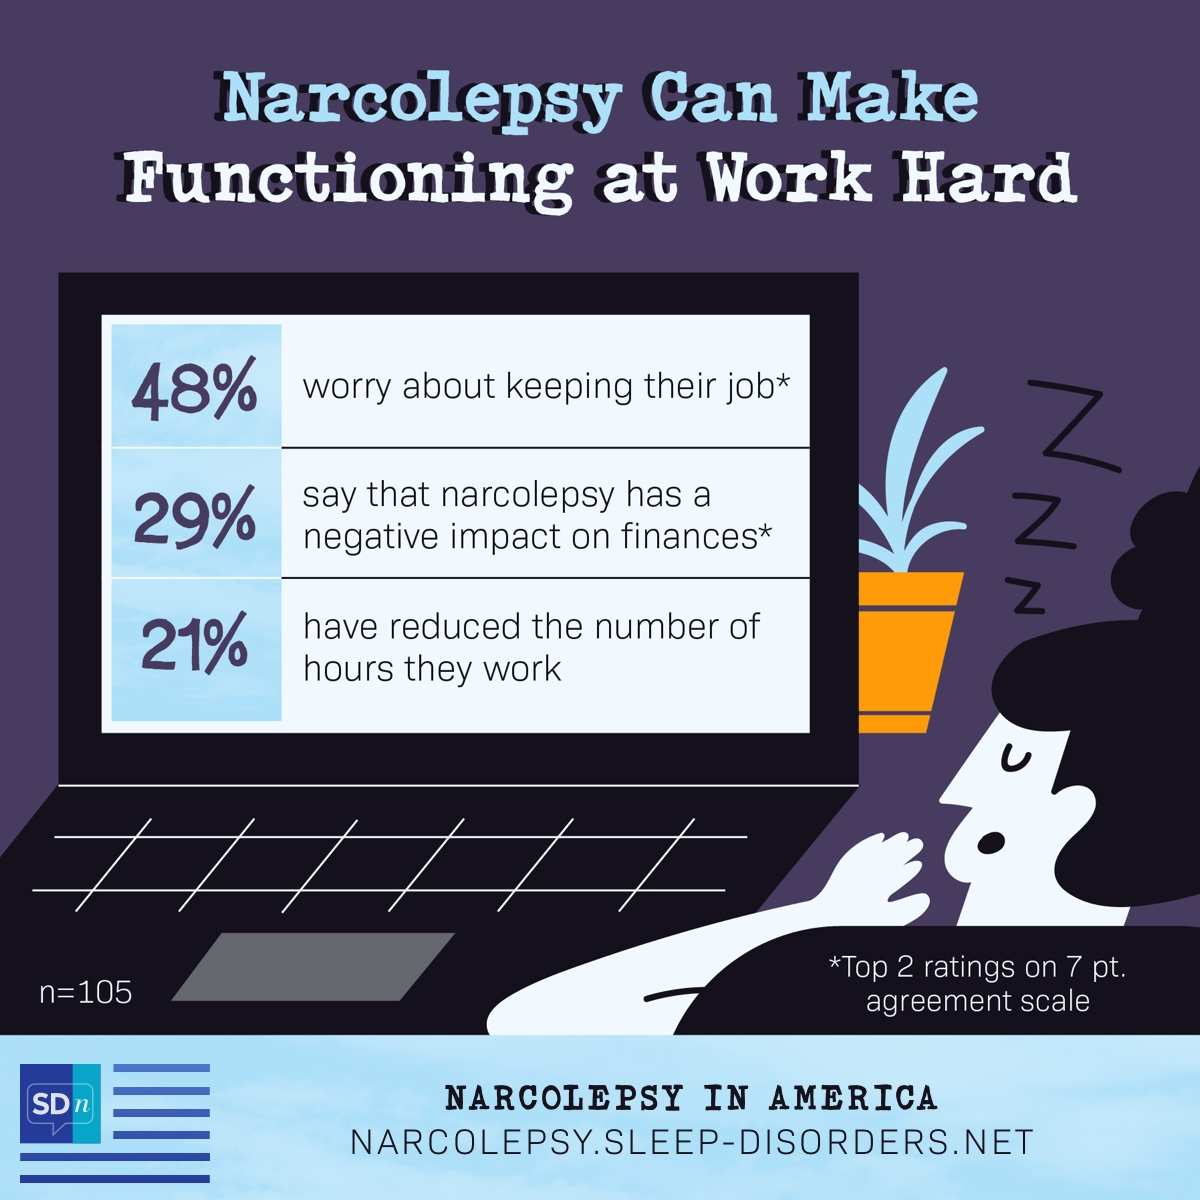 According to the Narcolepsy In America Survey, narcolepsy can have an impact at work with 48% saying they worry about keeping their job, 29% saying it has an impact on finances, and 21% reducing hours at work.